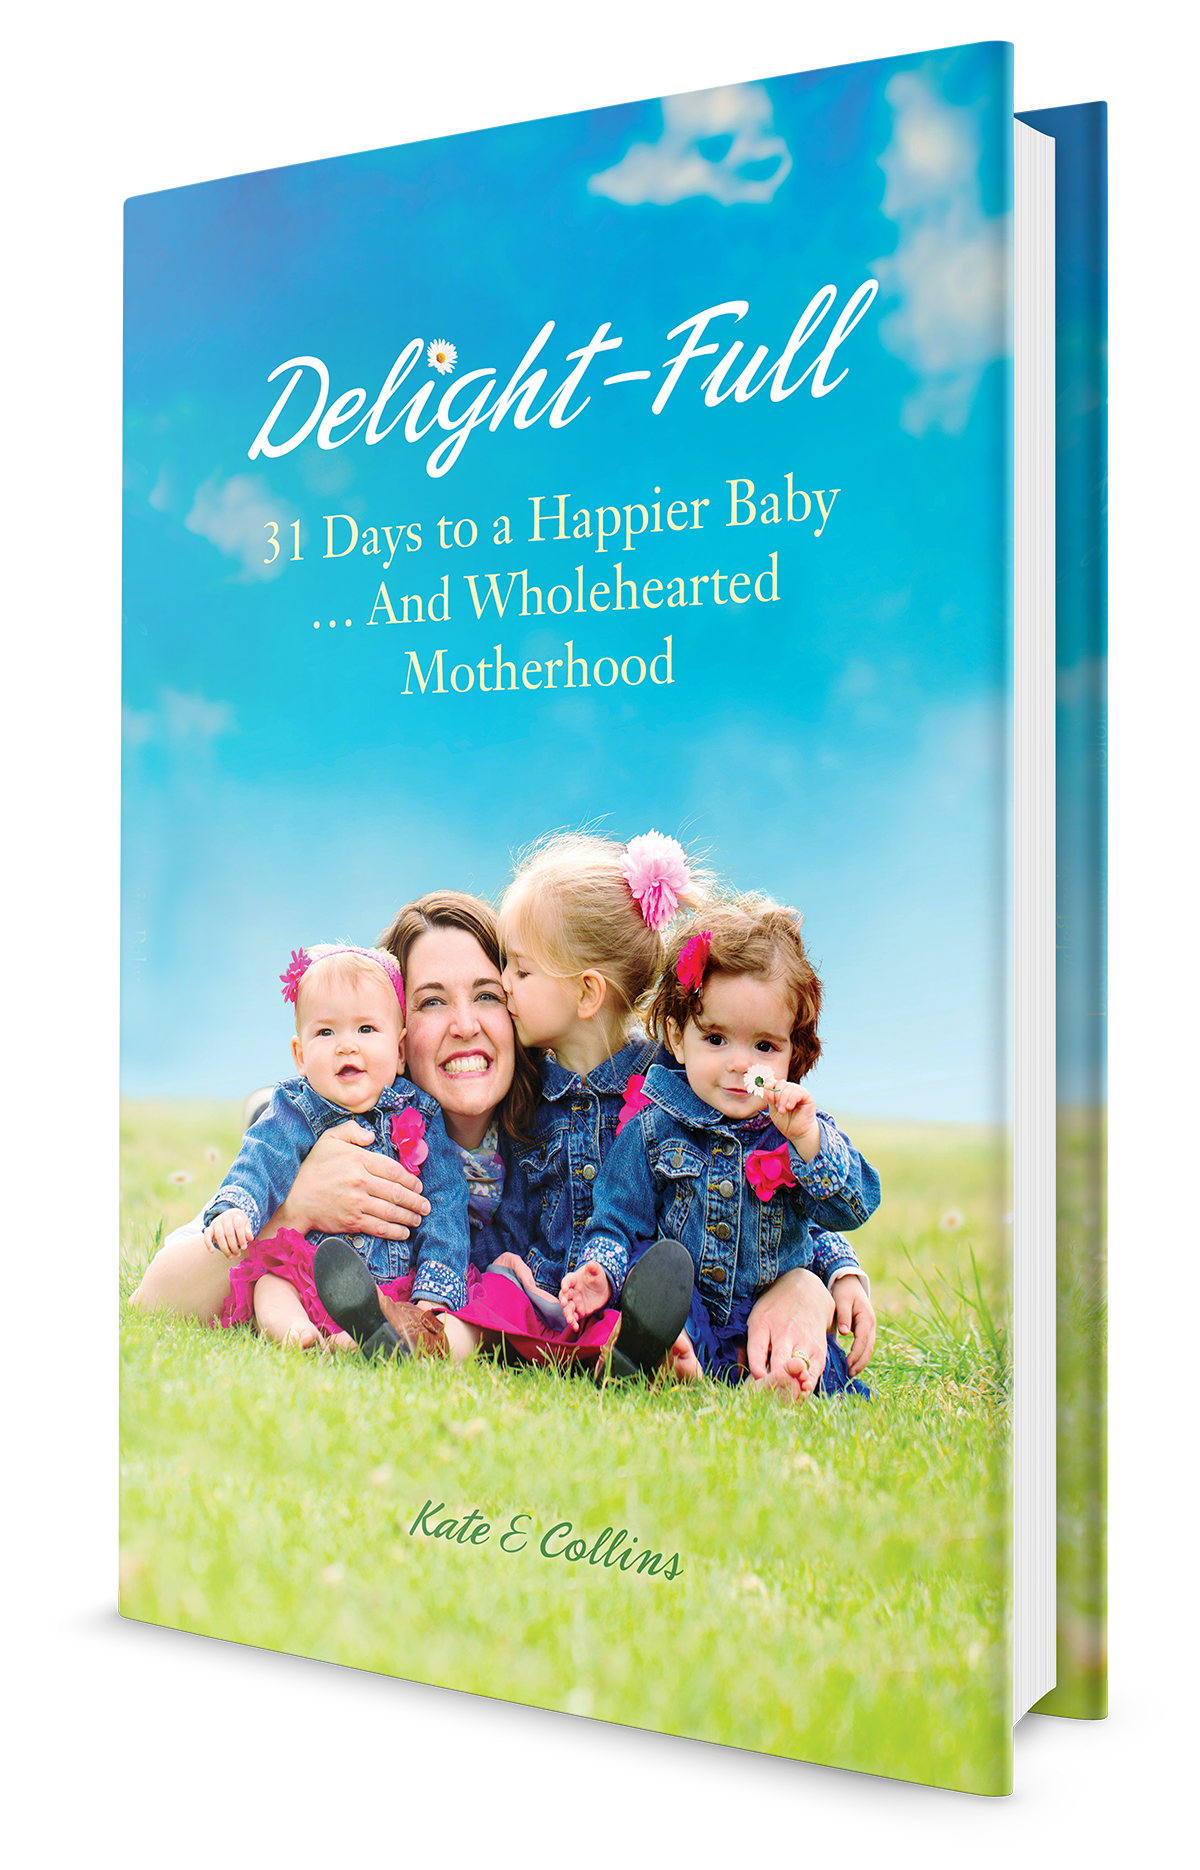 delight-full: 31 Days to a Happier baby and Wholehearted Motherhood